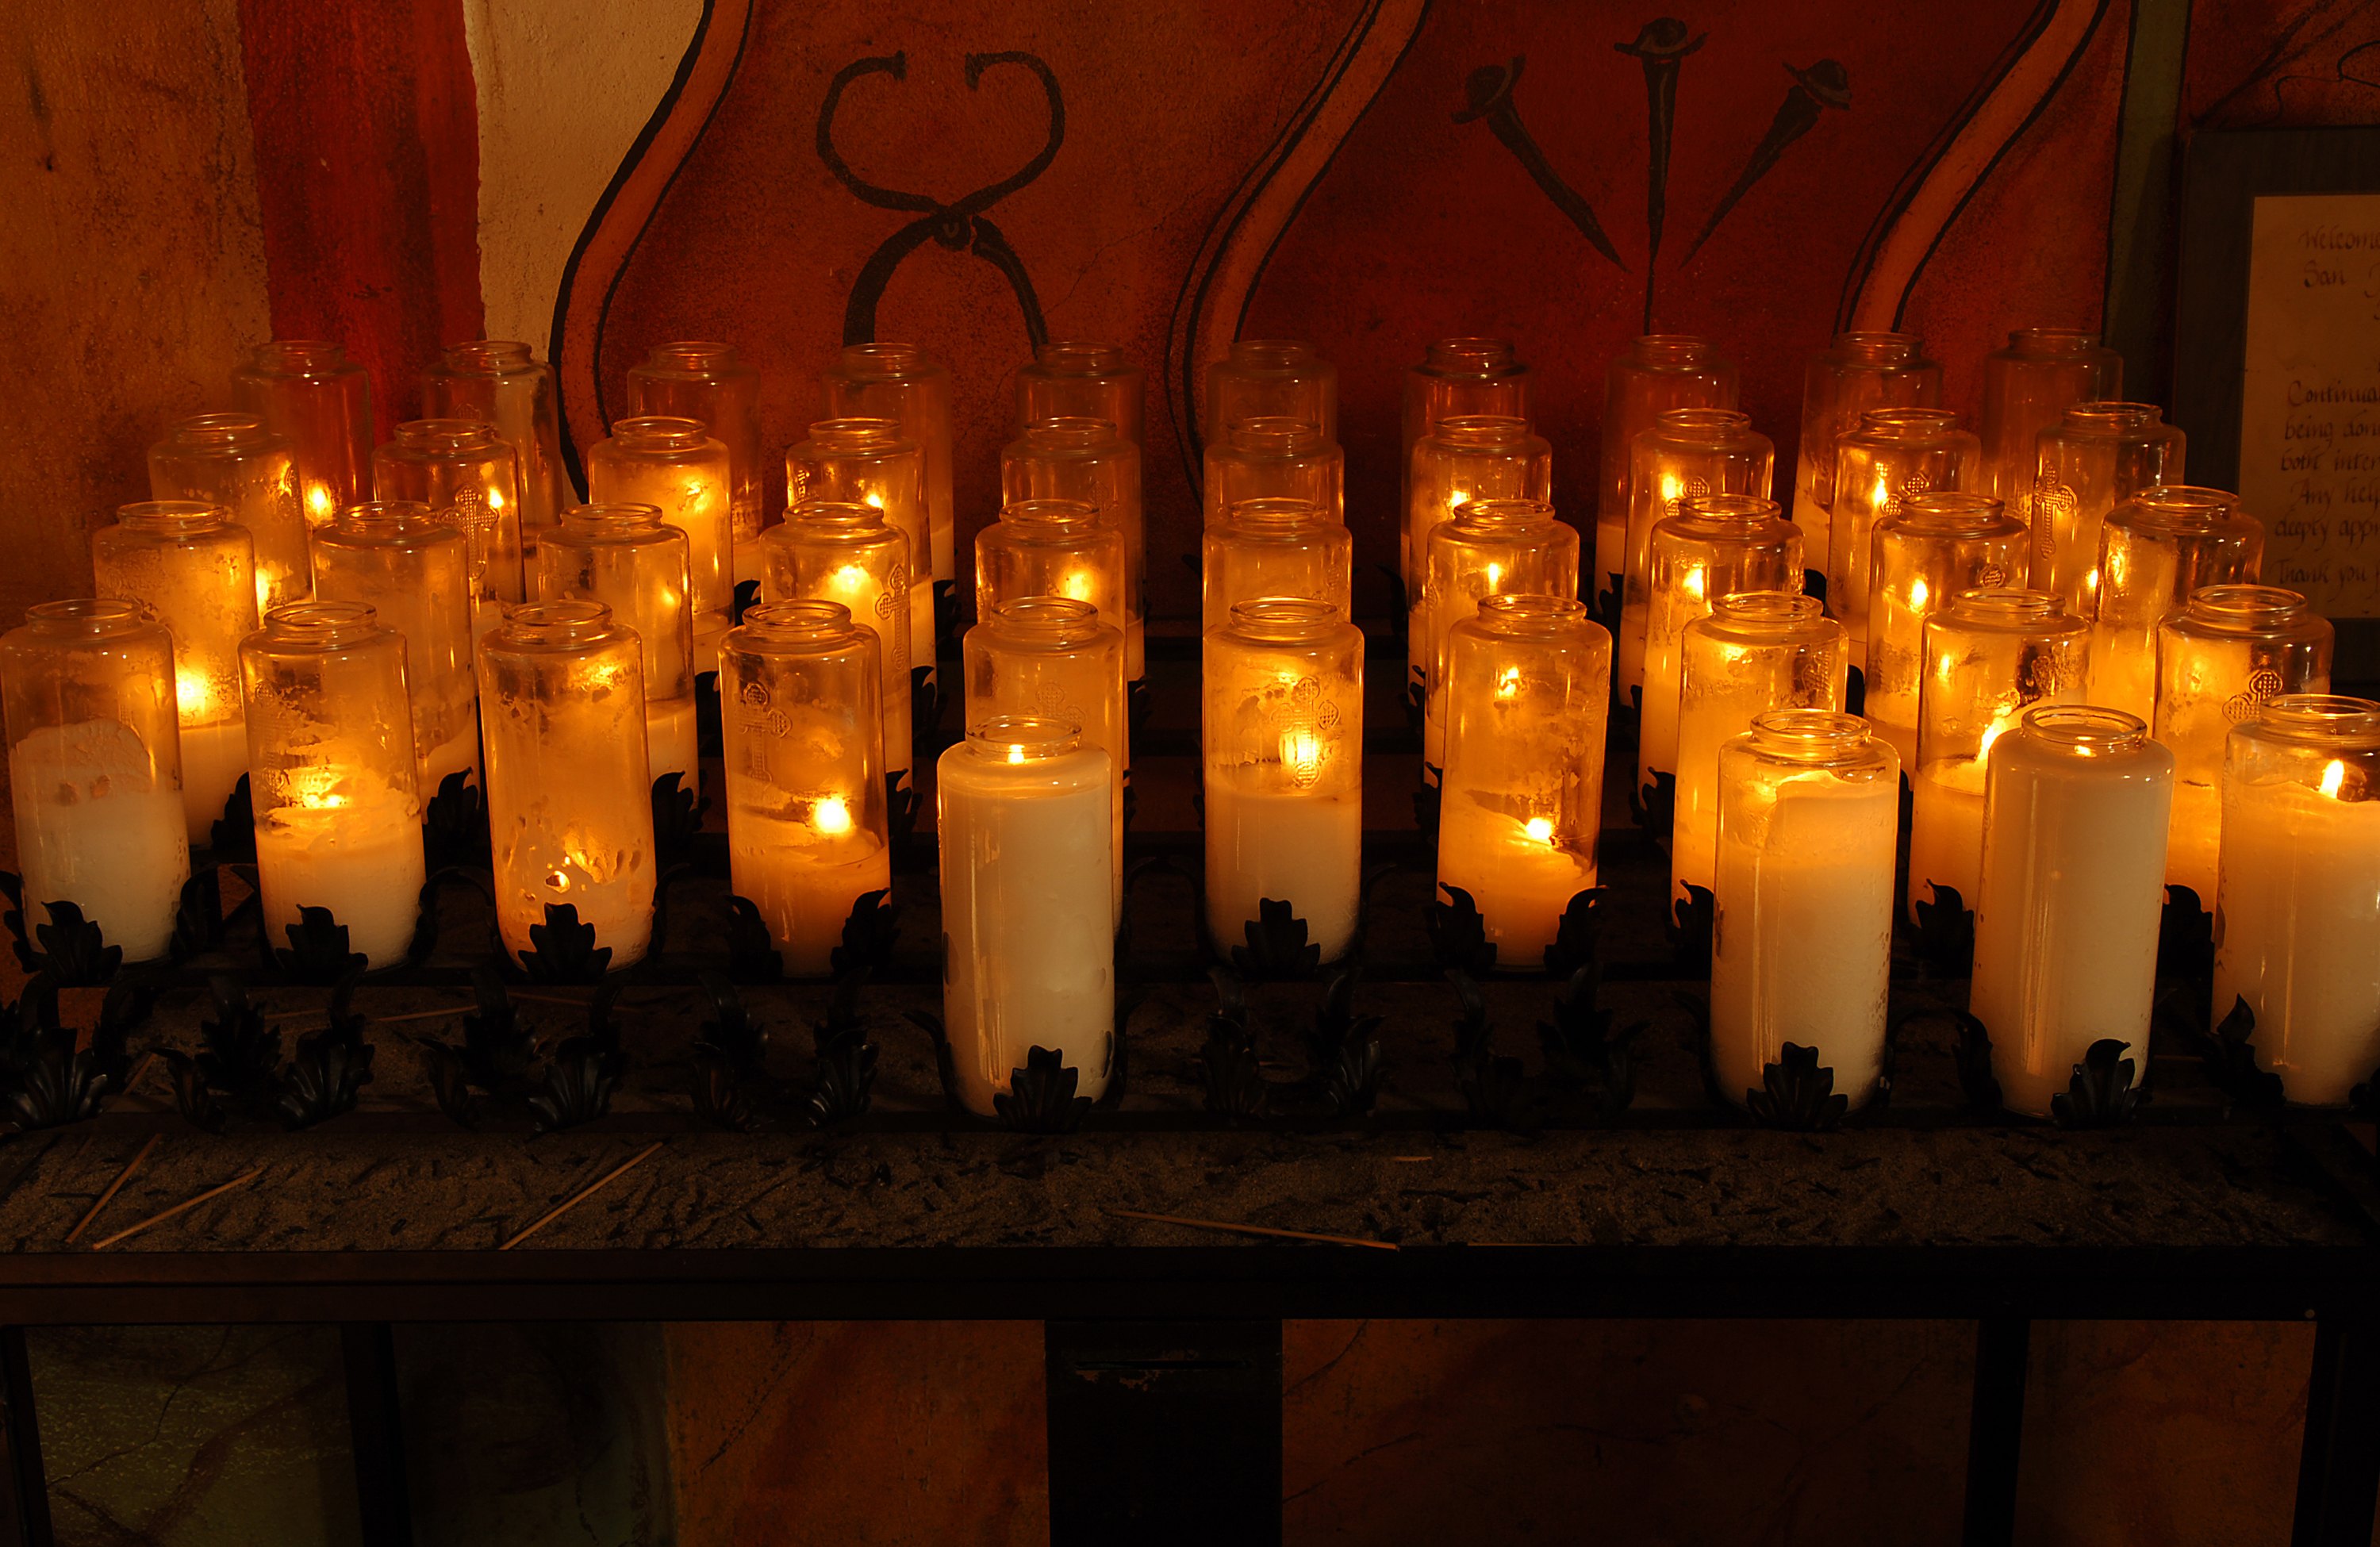 Lighting Votive Candles In Catholic Church Images & Lighting Candles In Catholic Church - Democraciaejustica